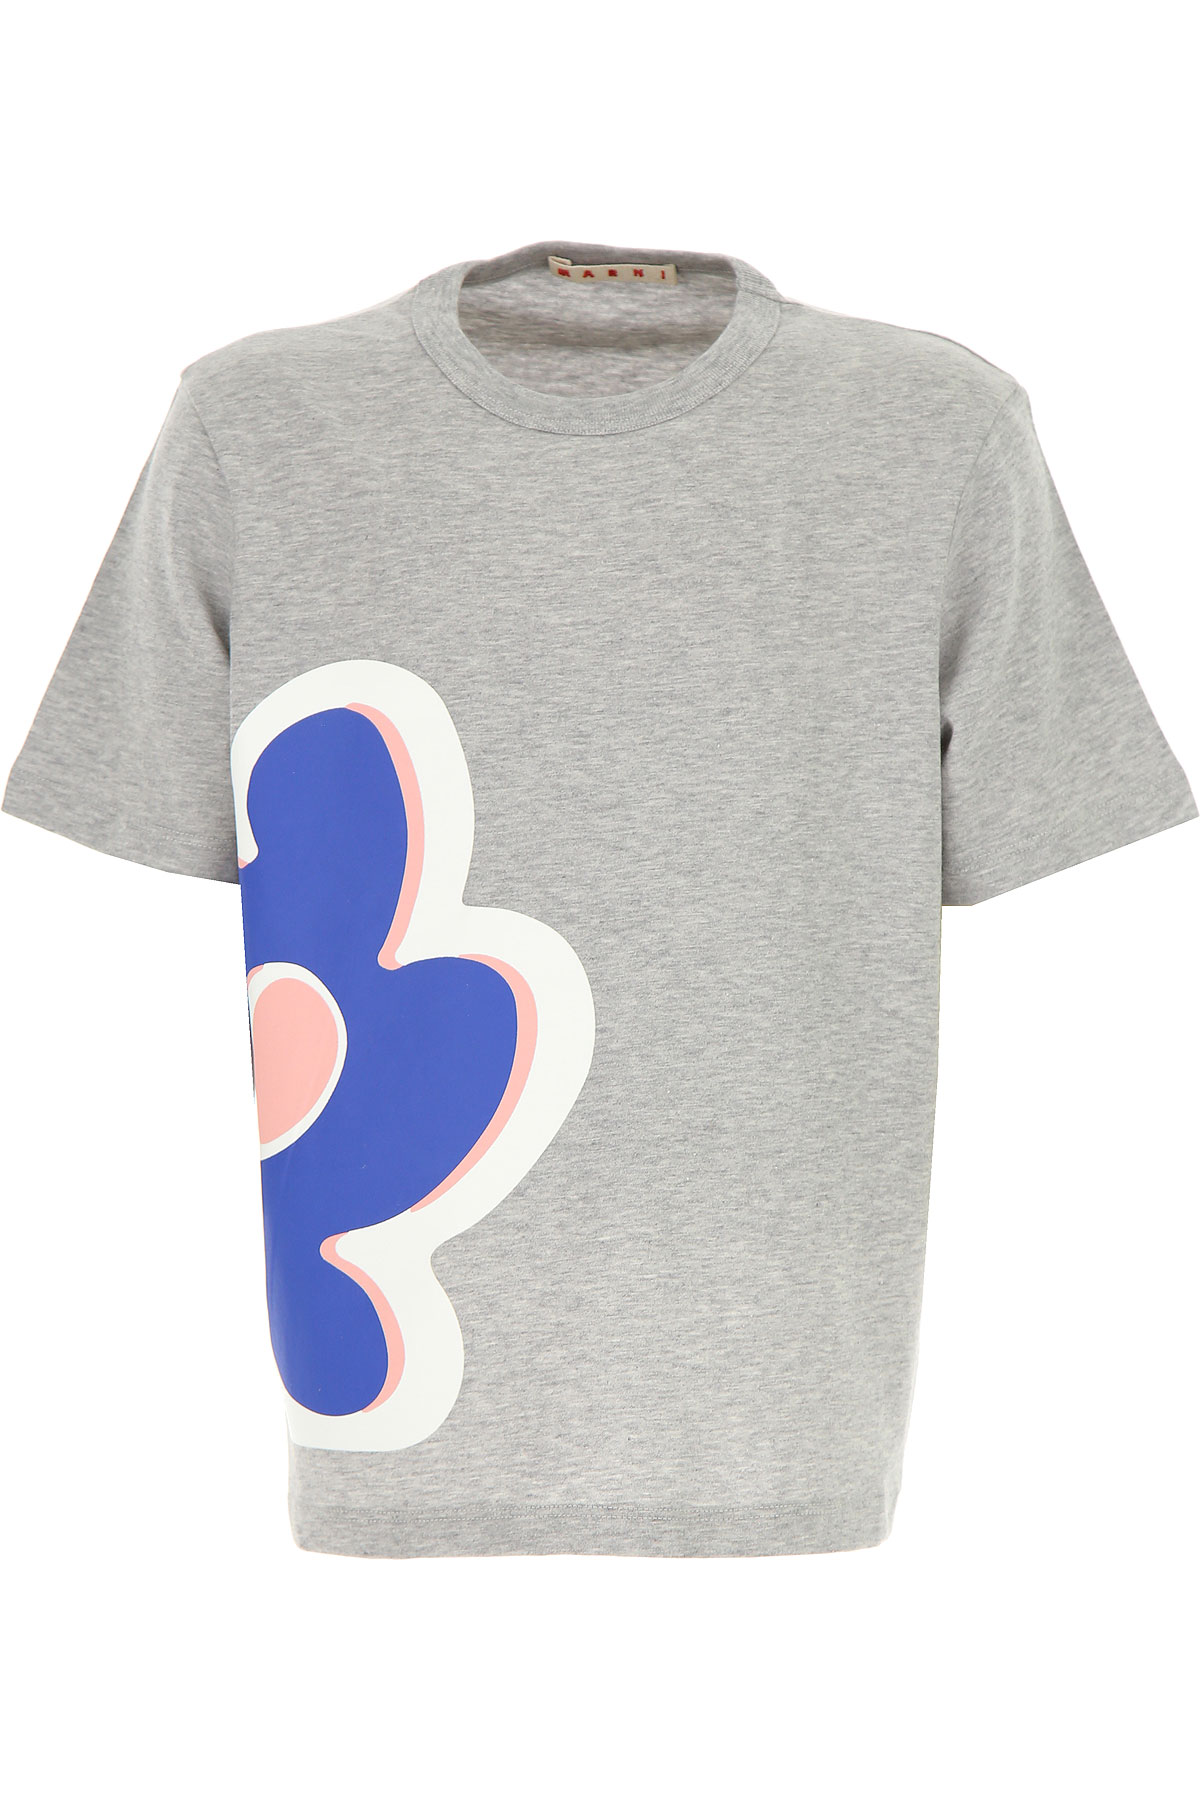 Image of Marni Kids T-Shirt for Girls, Grey, Cotton, 2017, 10Y 14Y 8Y